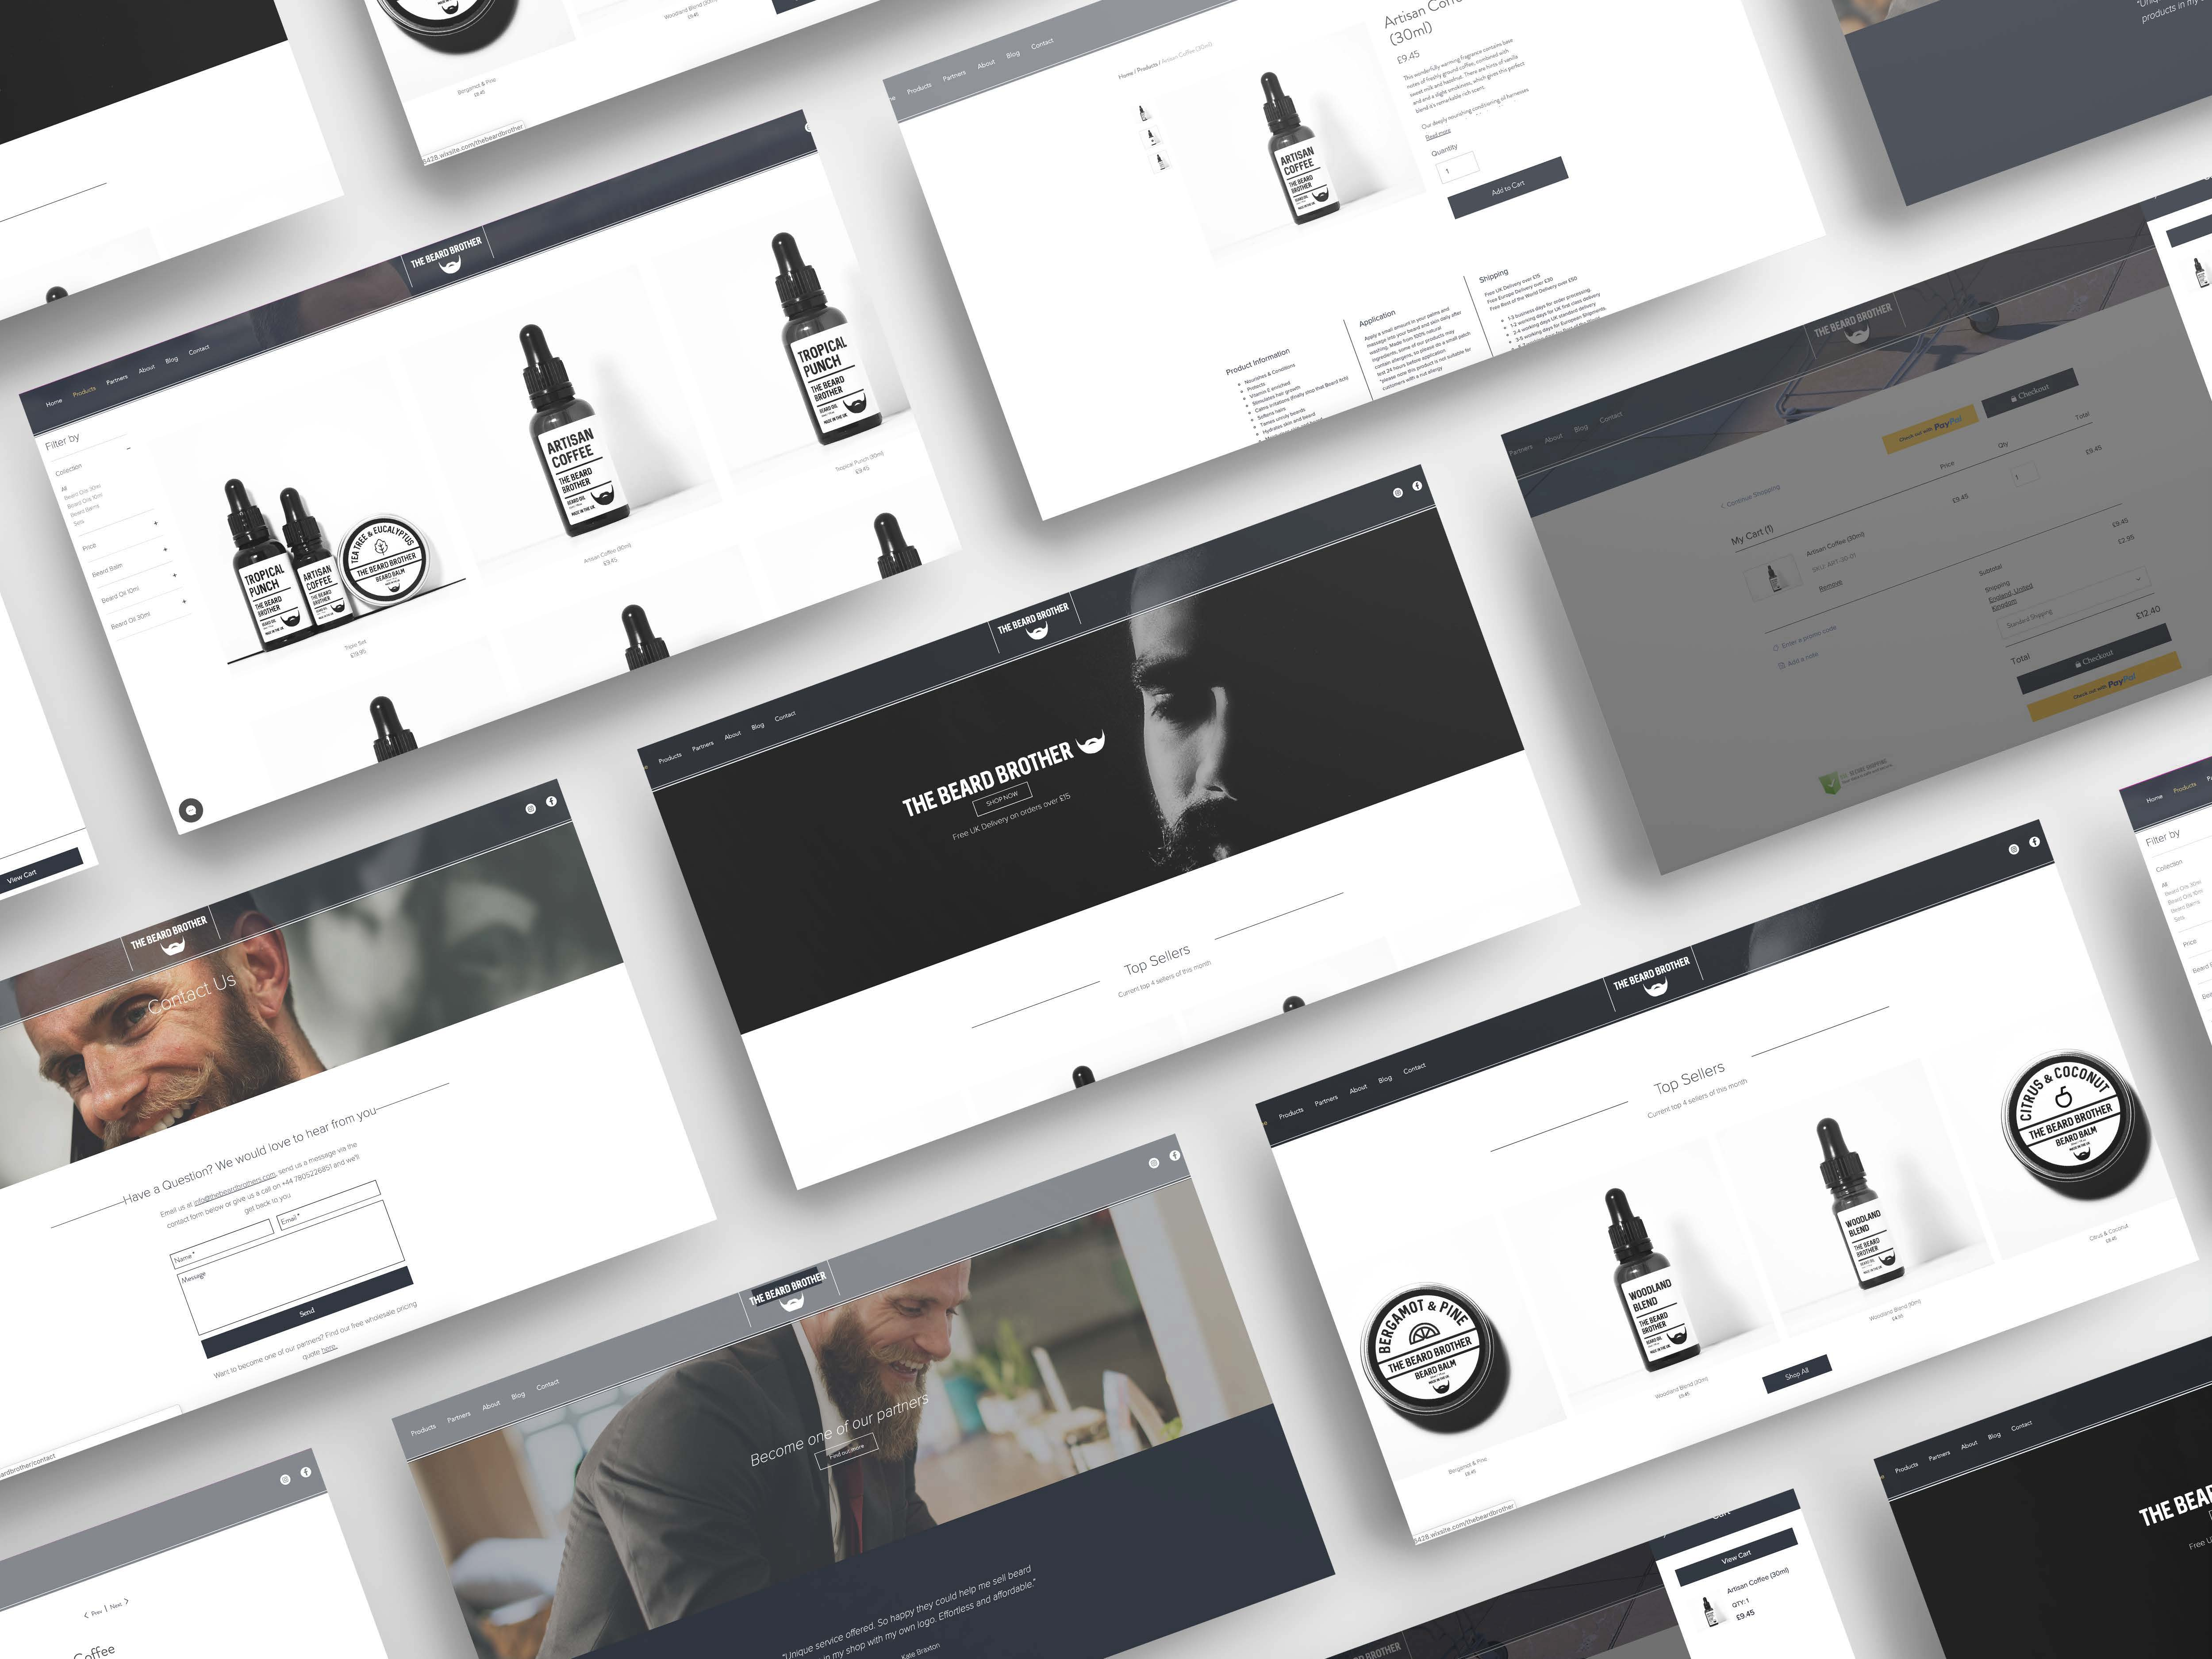 A web development design for a beard oil company displaying different images of pages on their website